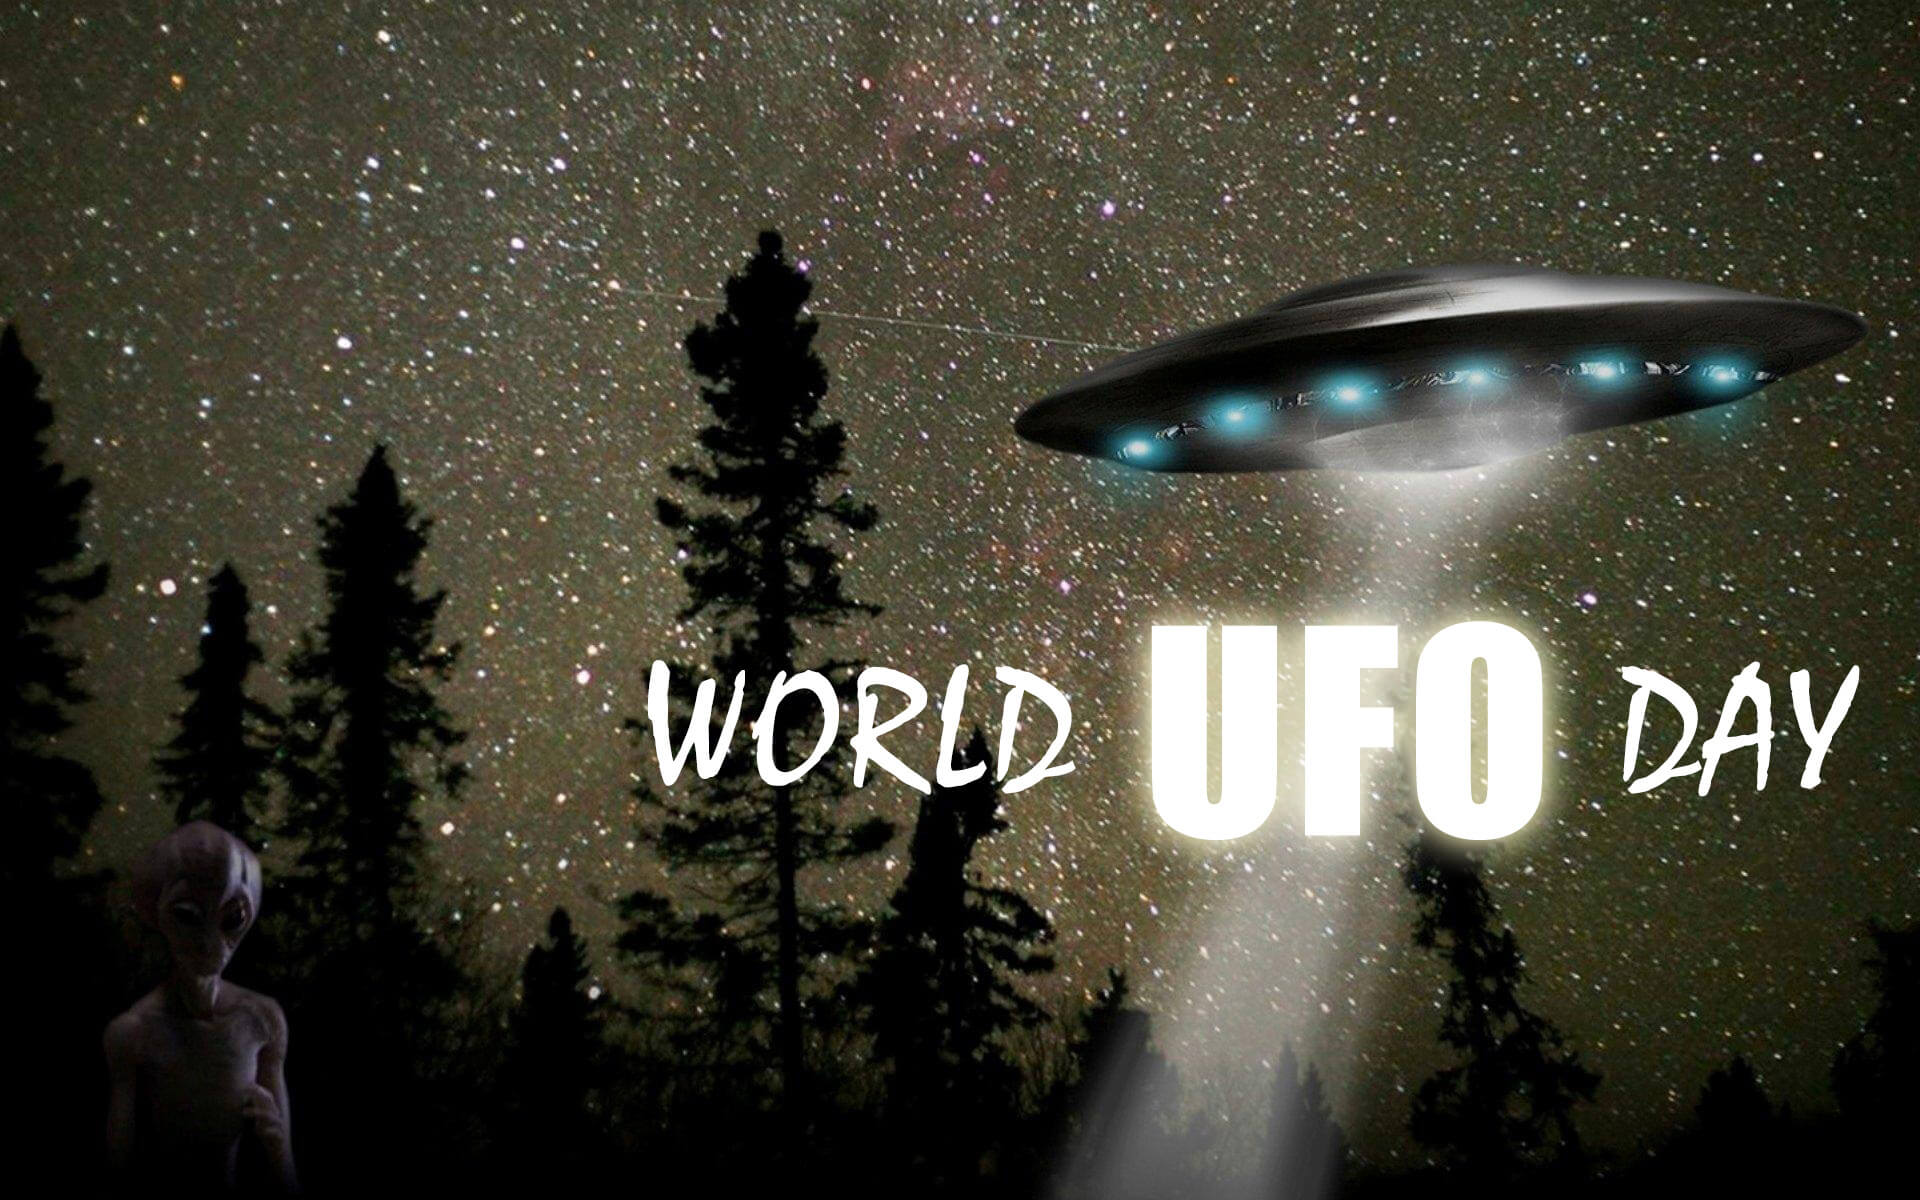 world ufo day unidentified flying object saucer alien hd wallpaper